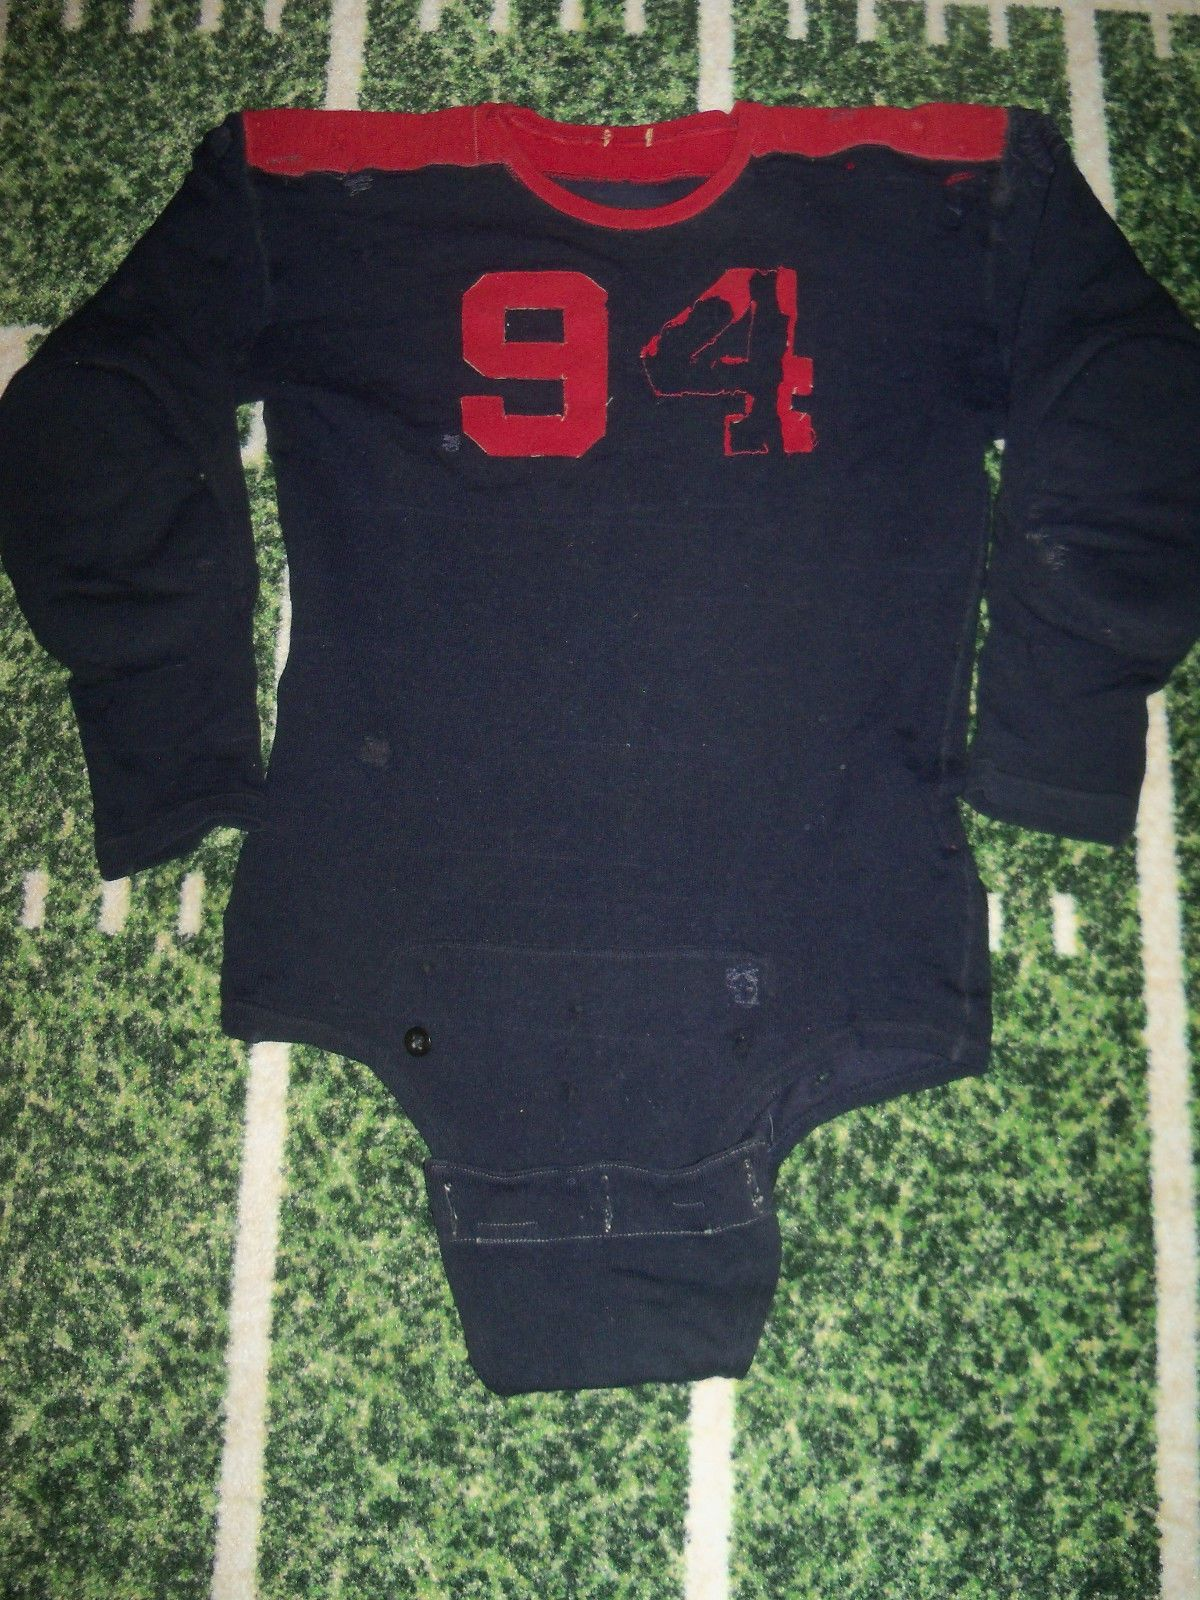 d250b9d60 1920's game worn football jersey. The jersey is made of a wool blend and  really